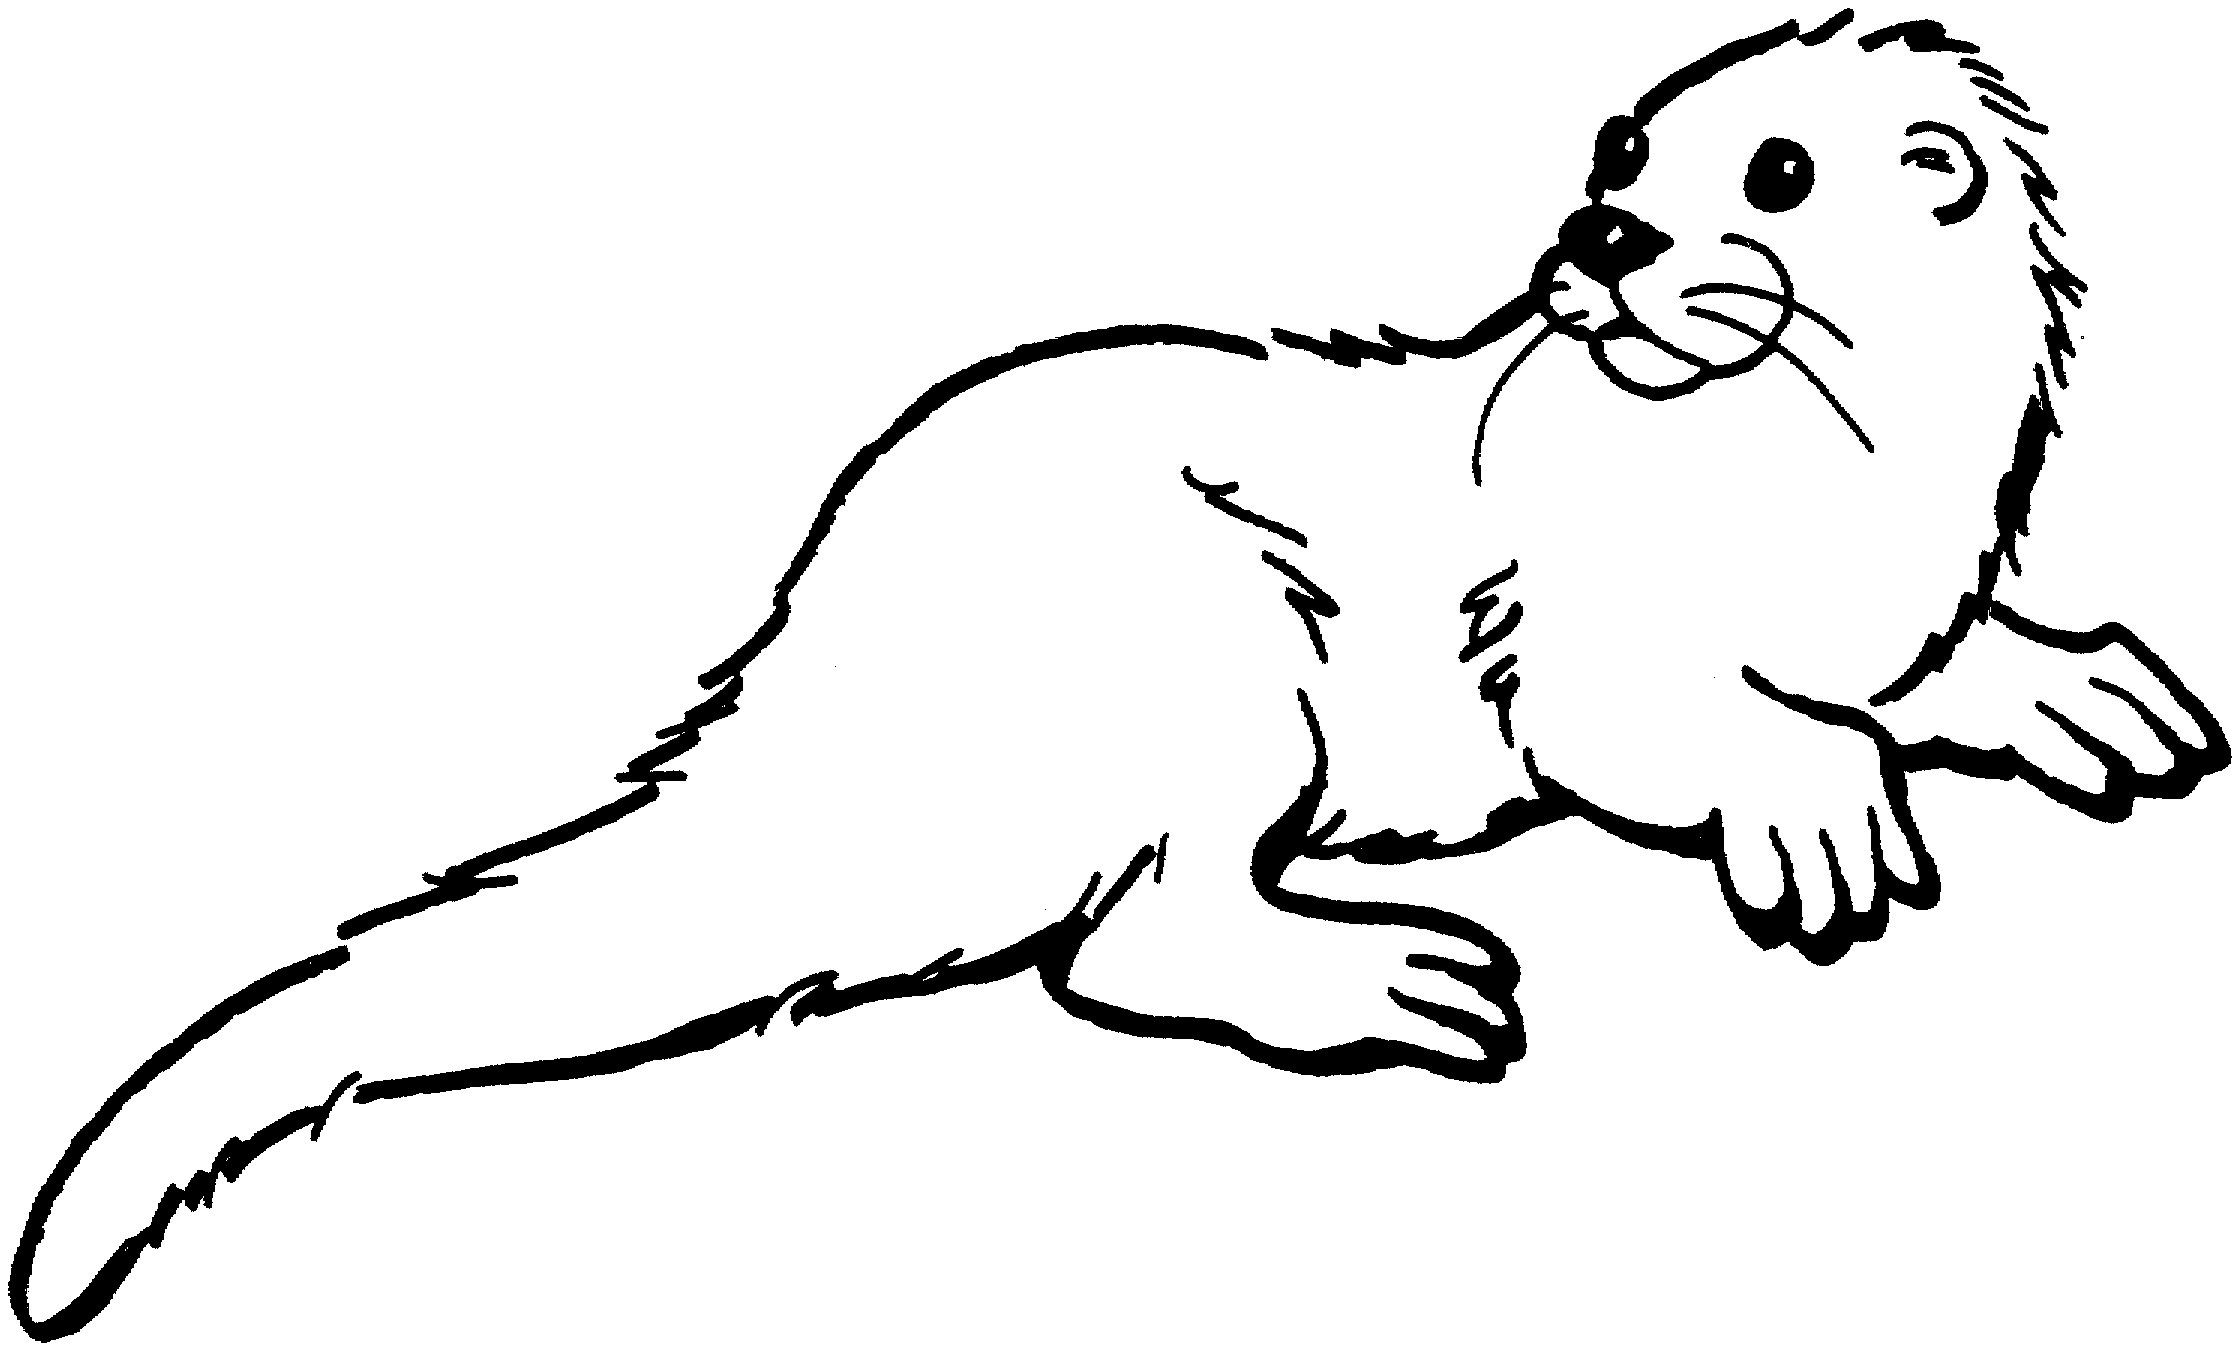 25 Great Image Of Otter Coloring Pages Otters Animal Coloring